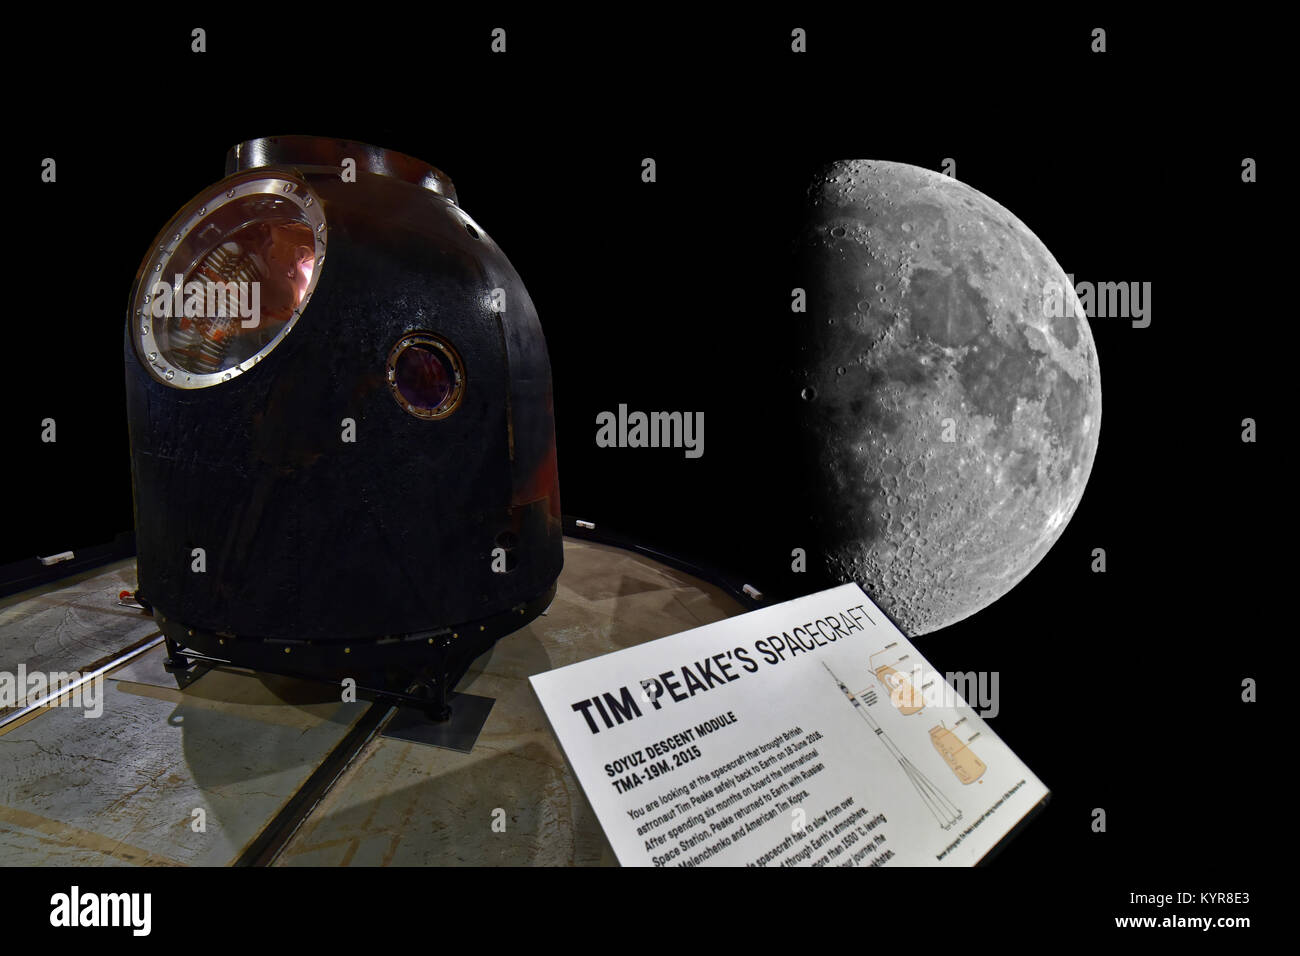 Tim Peakes Soyuz Space Capulse against the moon background at Shildon - Stock Image